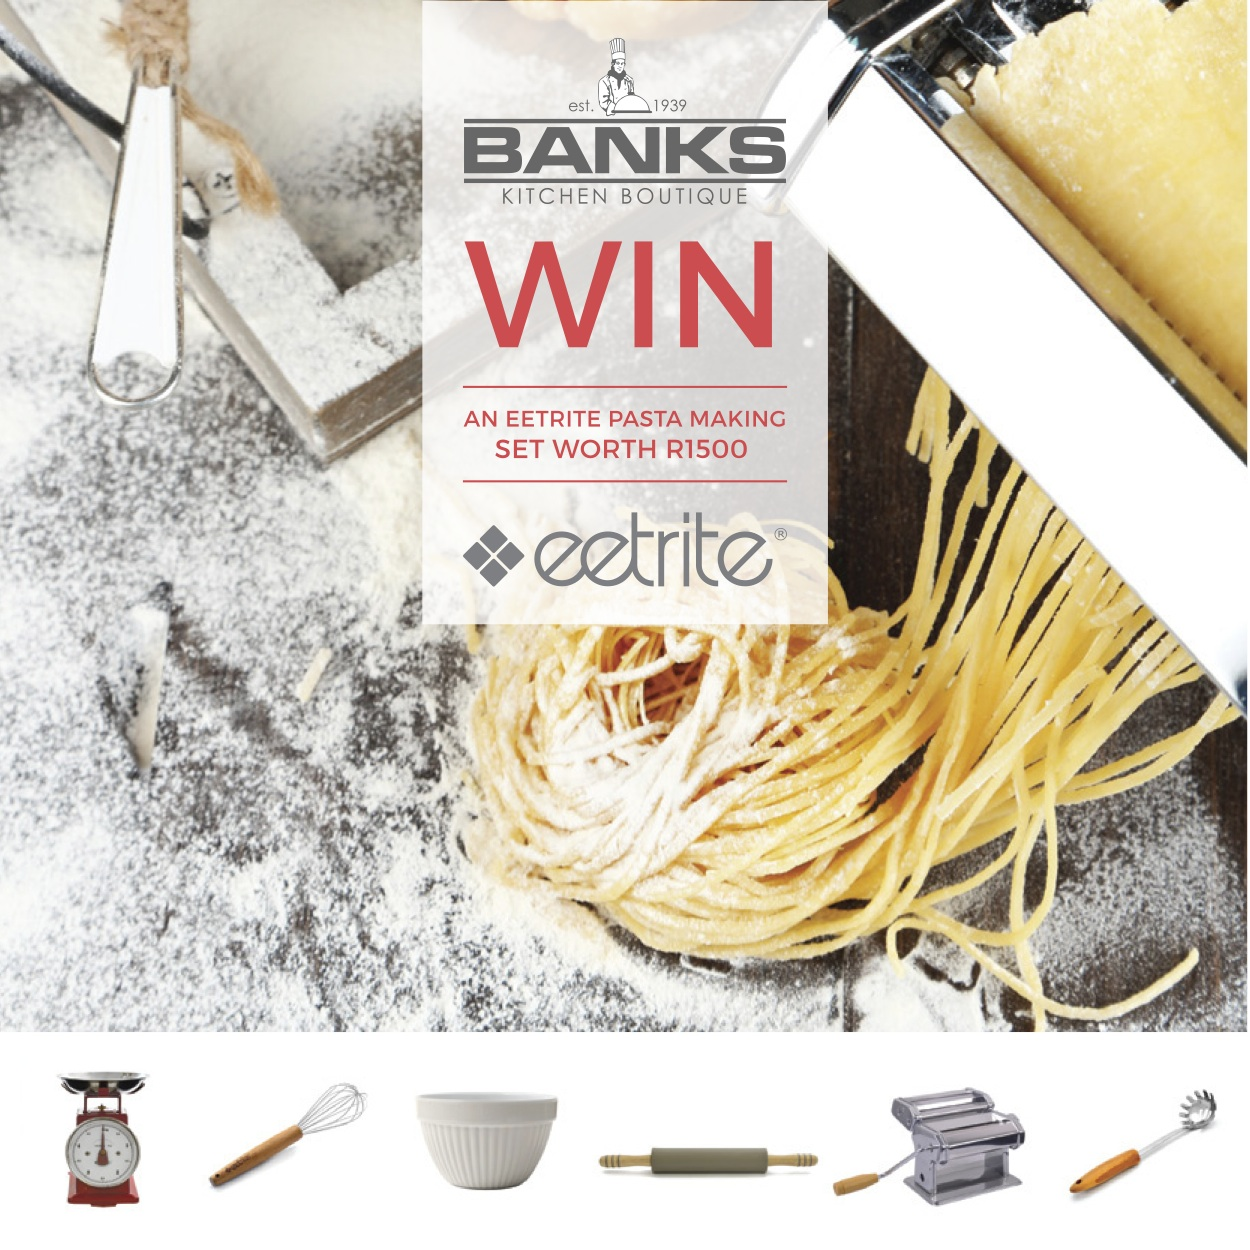 Win complete pasta making kit